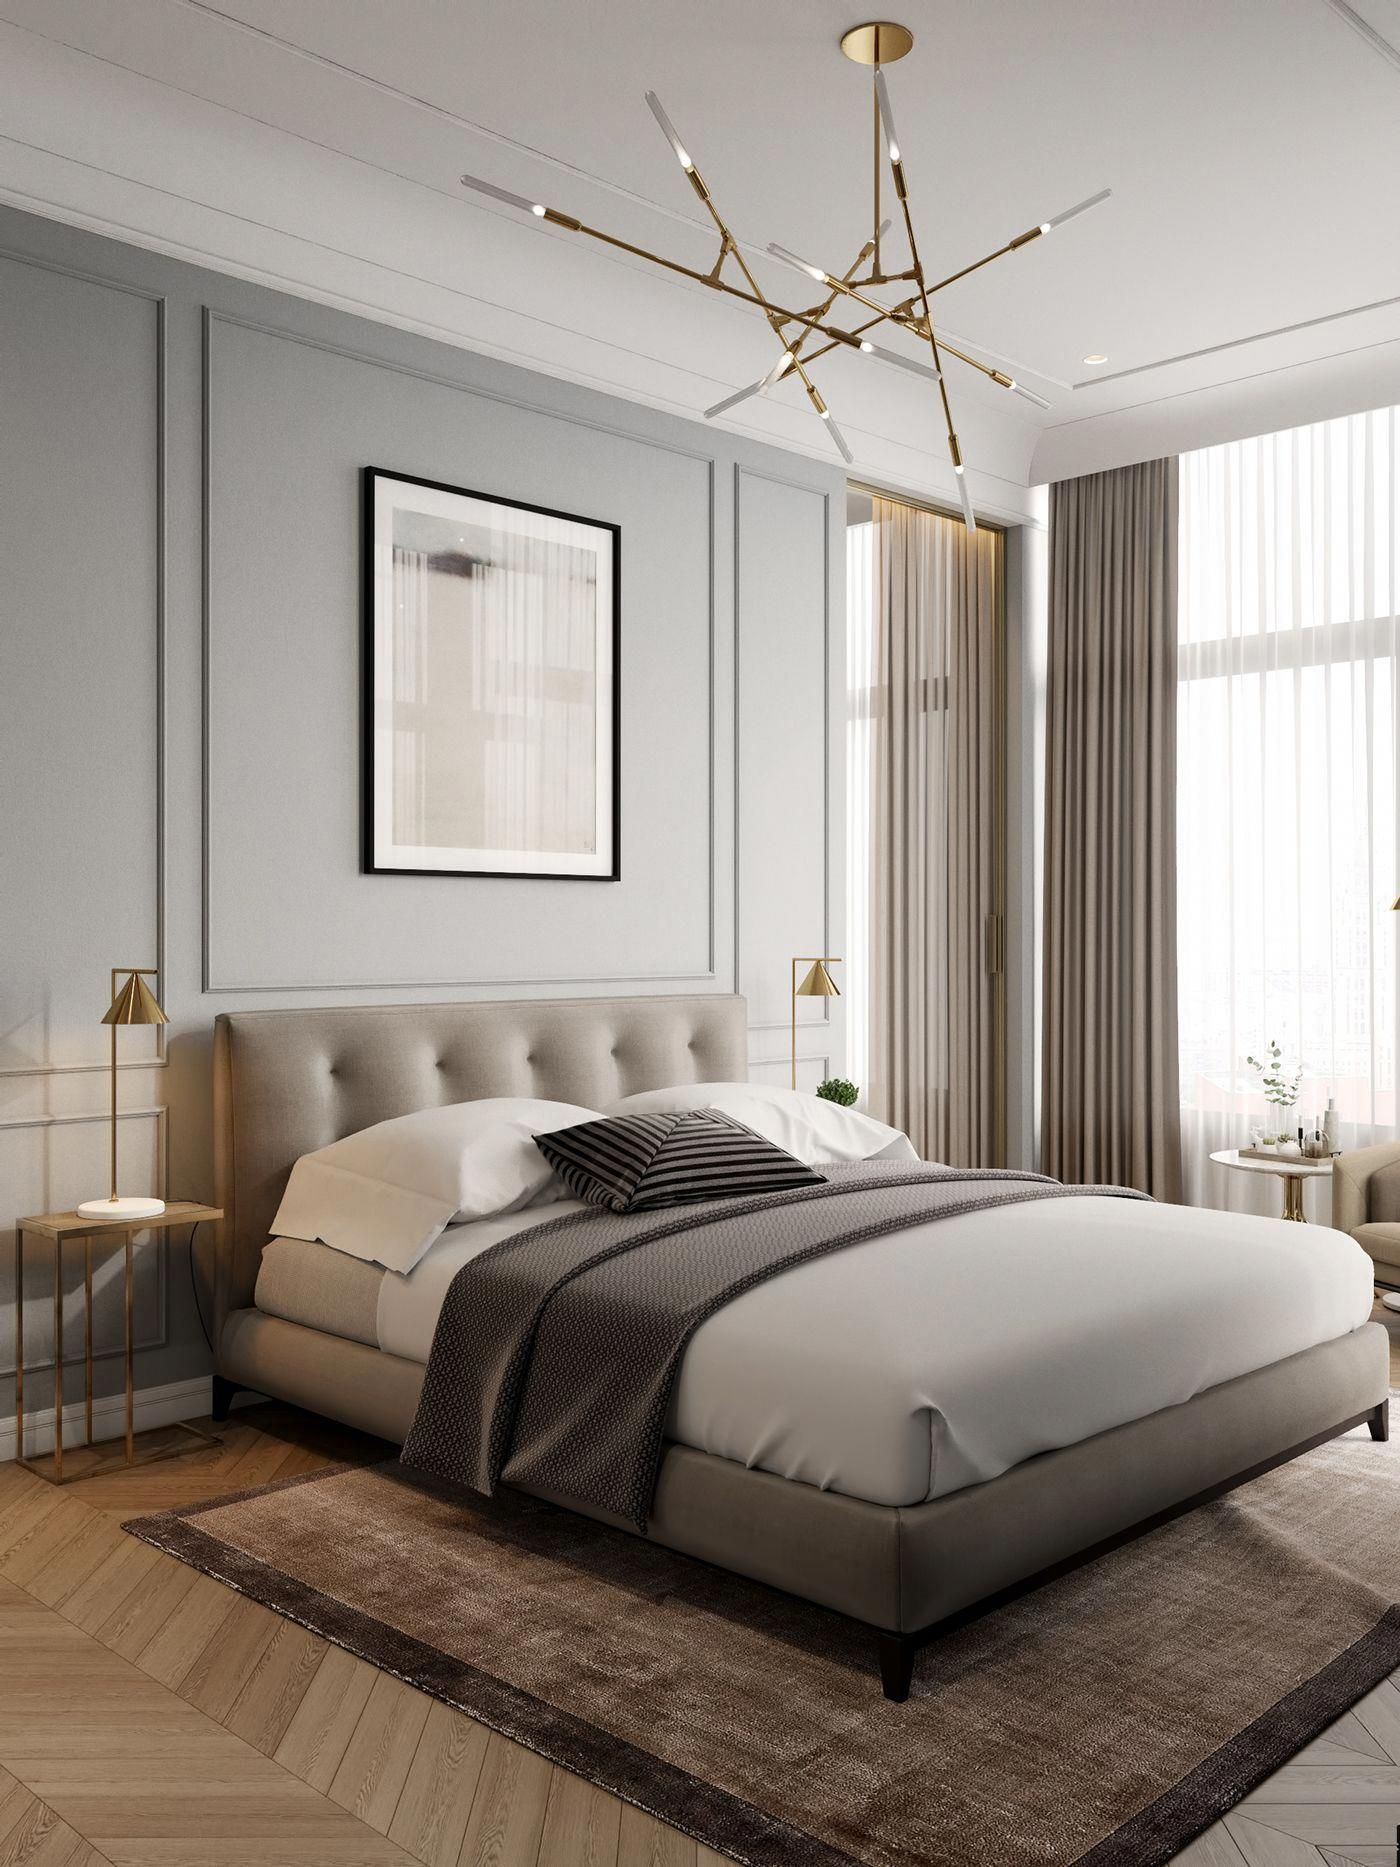 Modern Classics In The Interior On Behance Homedecorideas Luxurious Bedrooms Contemporary Bedroom Design Contemporary Bedroom